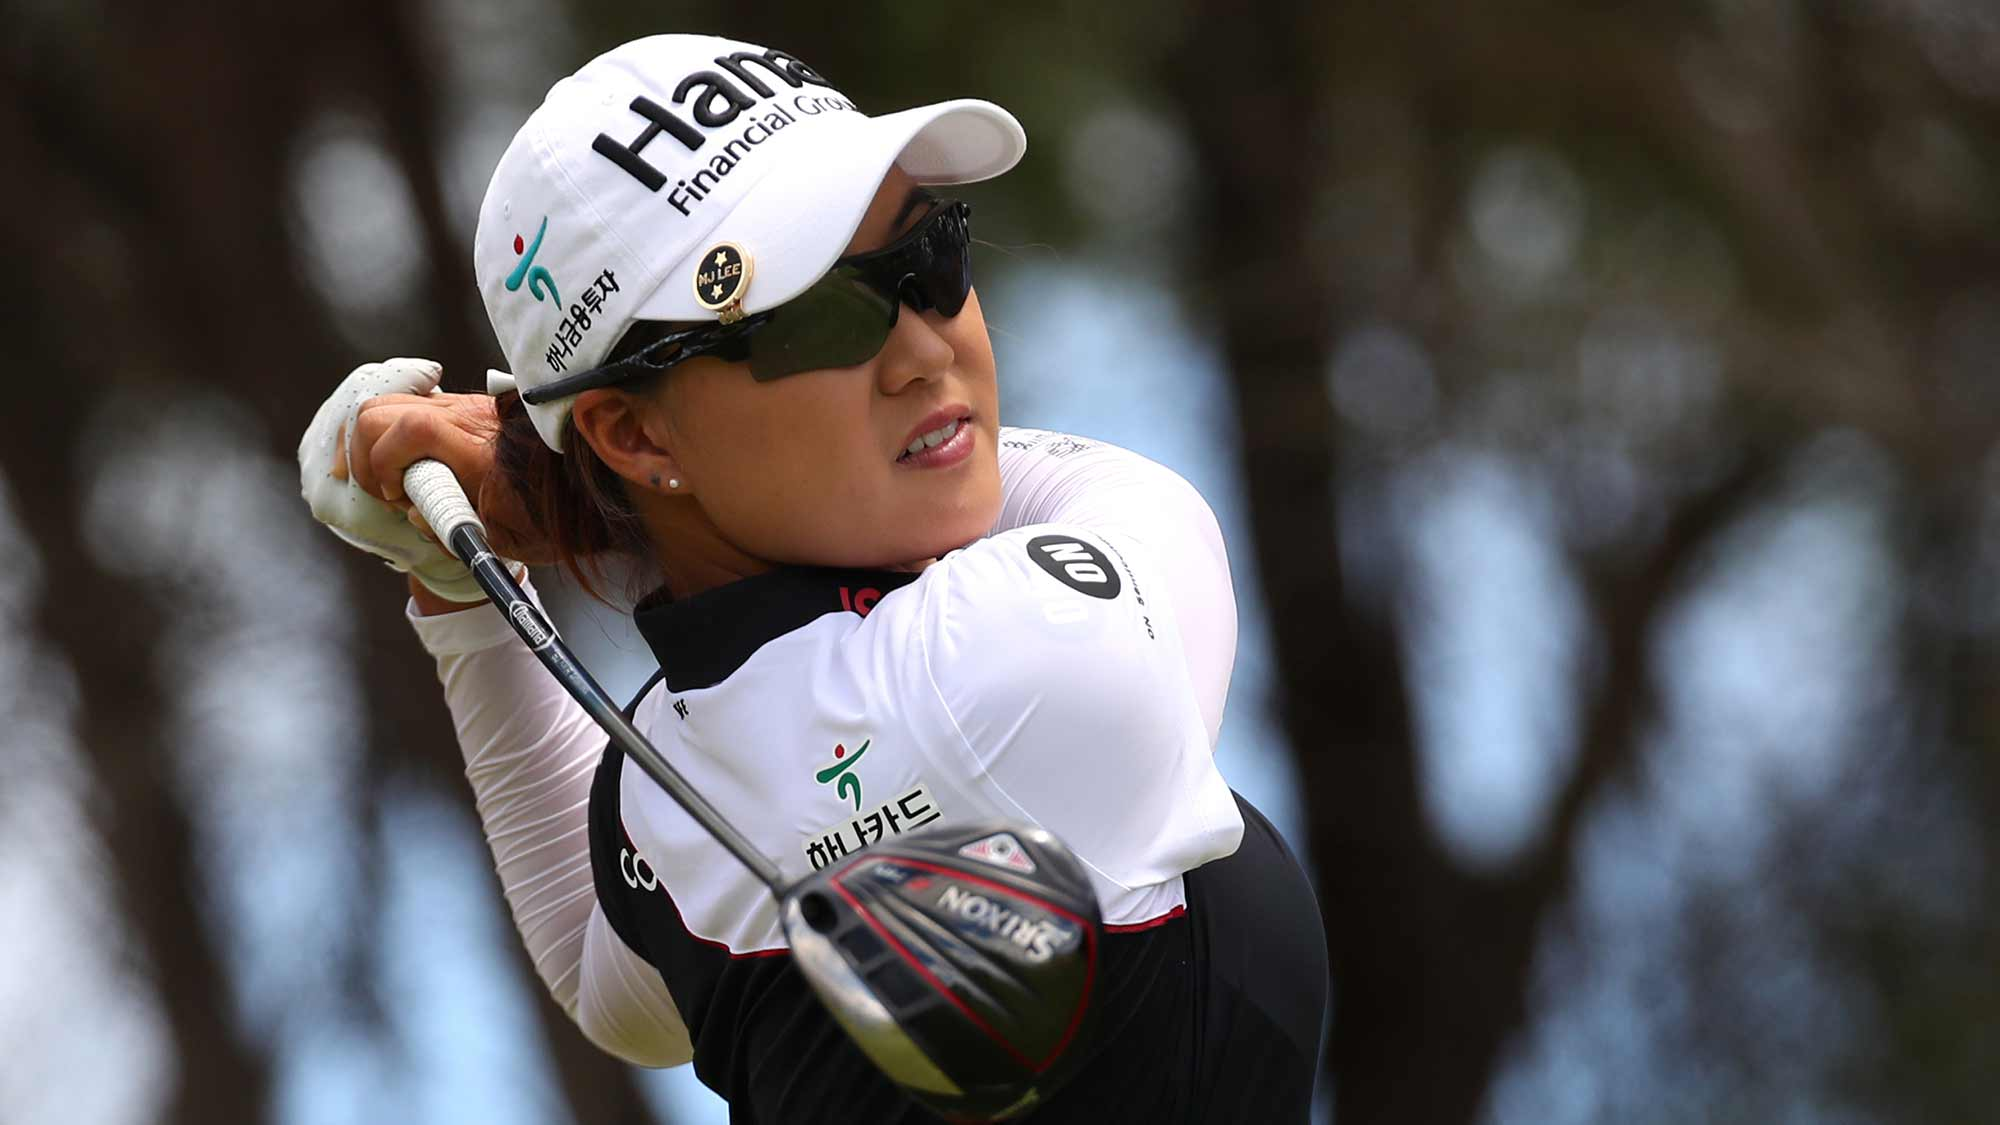 Minjee Lee of Australia watches her drive on the fifth hole during the final round of the LOTTE Championship at Ko Olina Golf Club on April 21, 2019 in Kapolei, Hawaii